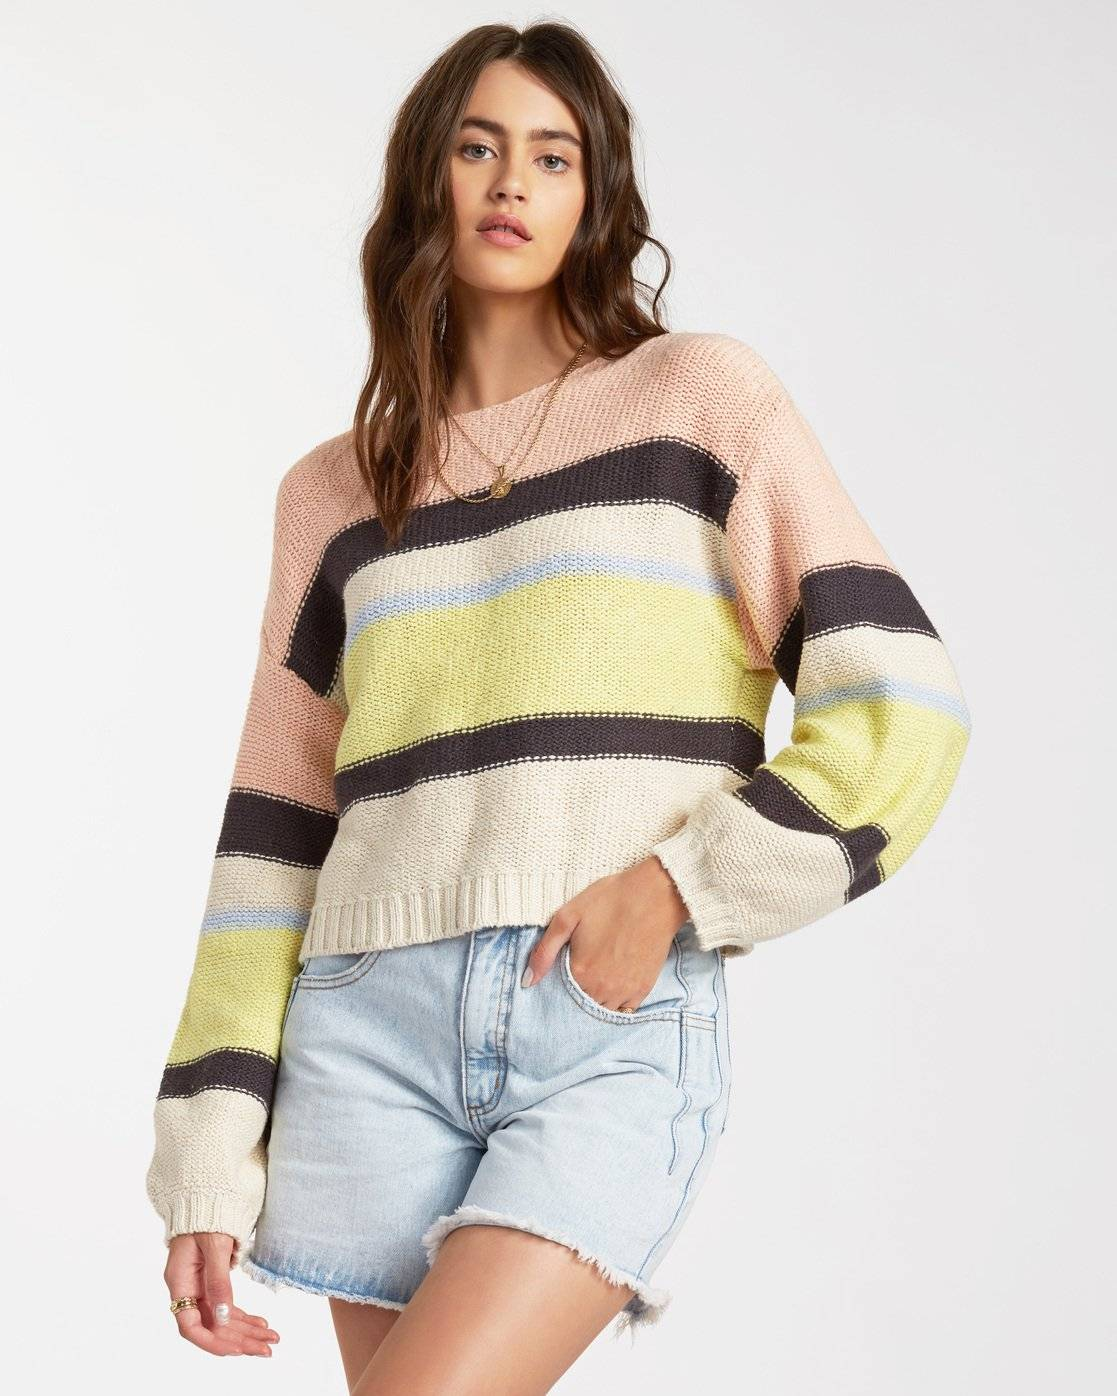 Billabong Seeing Stripes Sweater  - Multicolor - Size: Large